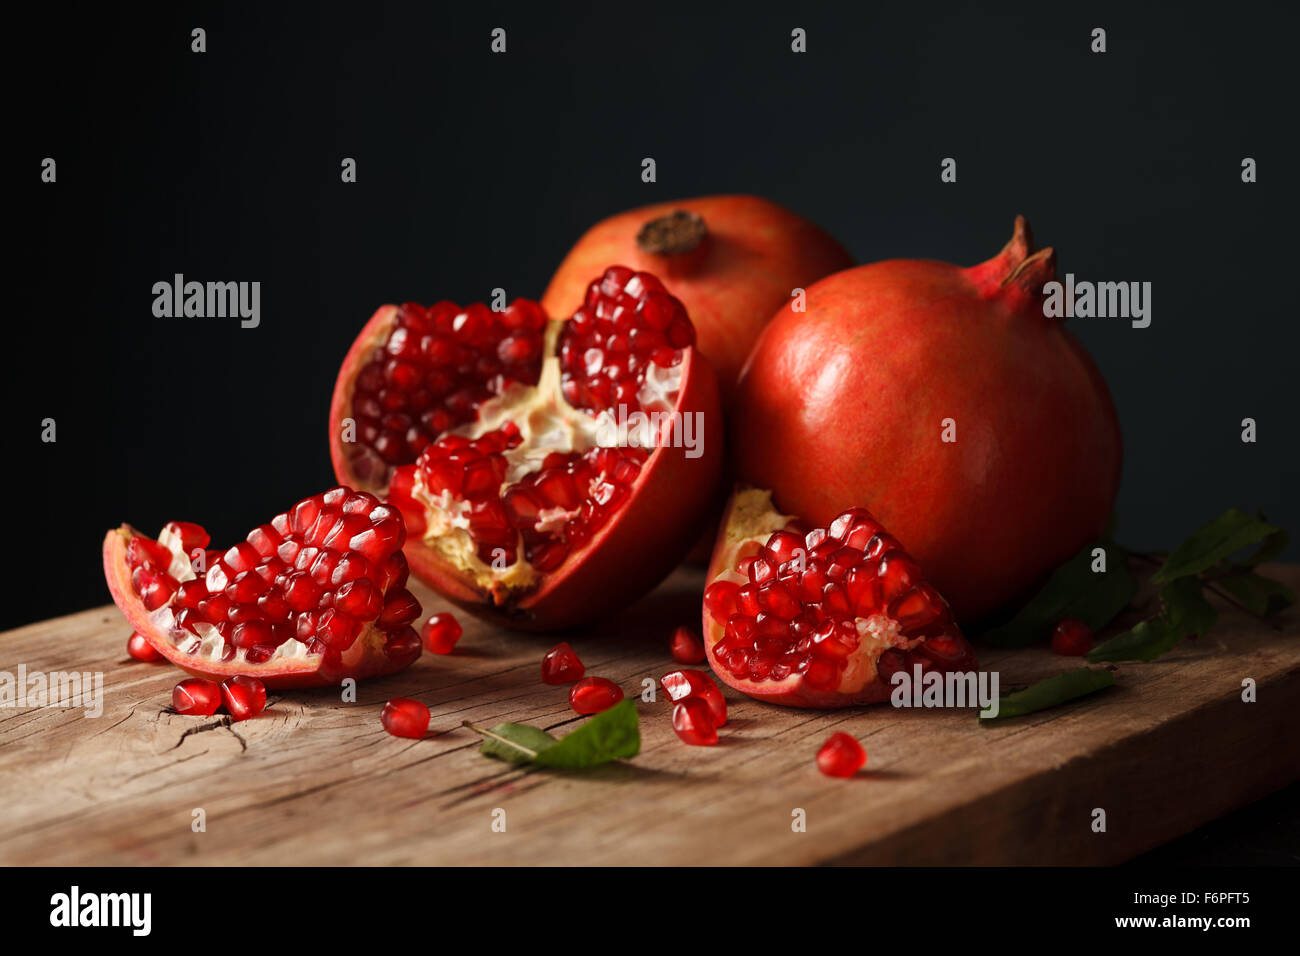 pomegranate fruit healthy food fresh organic still life vegetarian juicy antioxidant - Stock Image